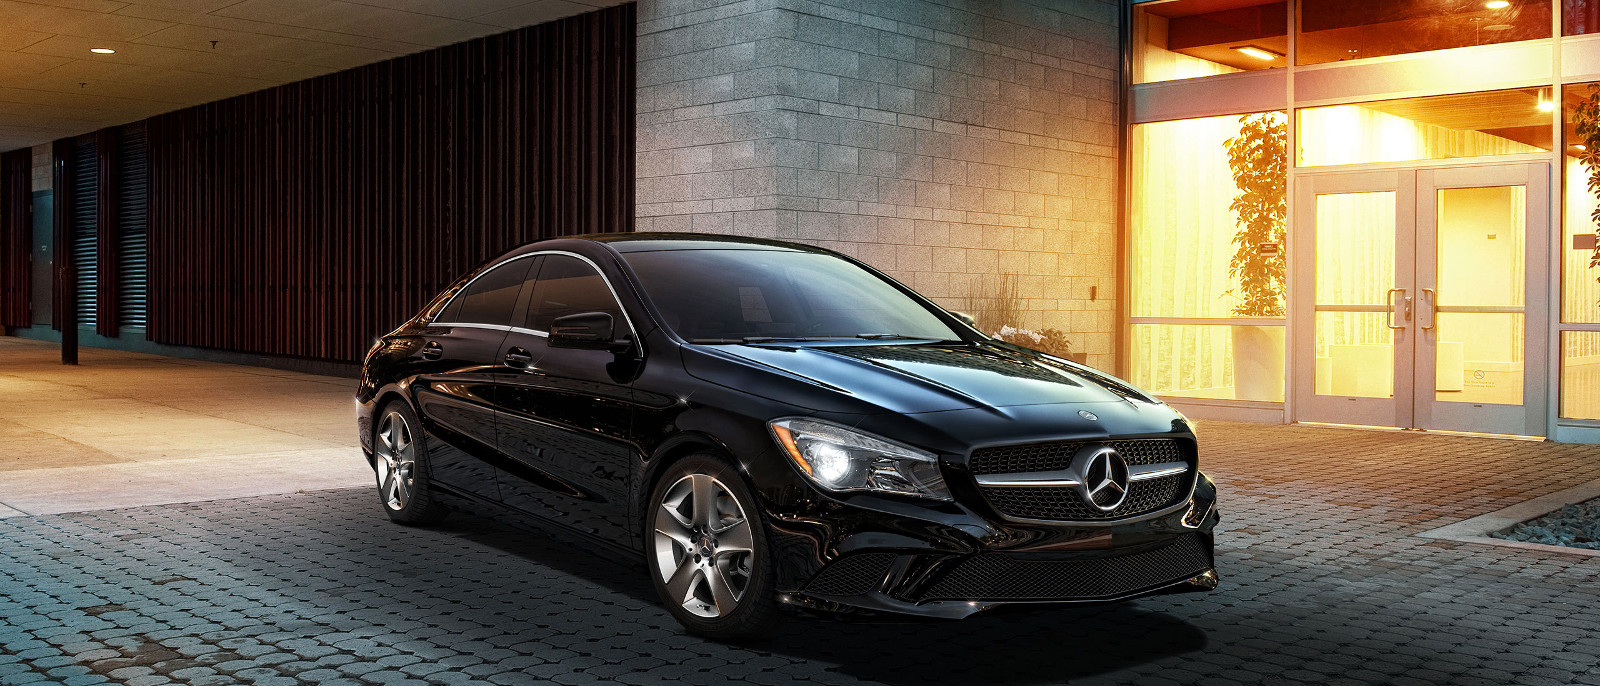 2015 Mercedes-Benz CLA Coupe